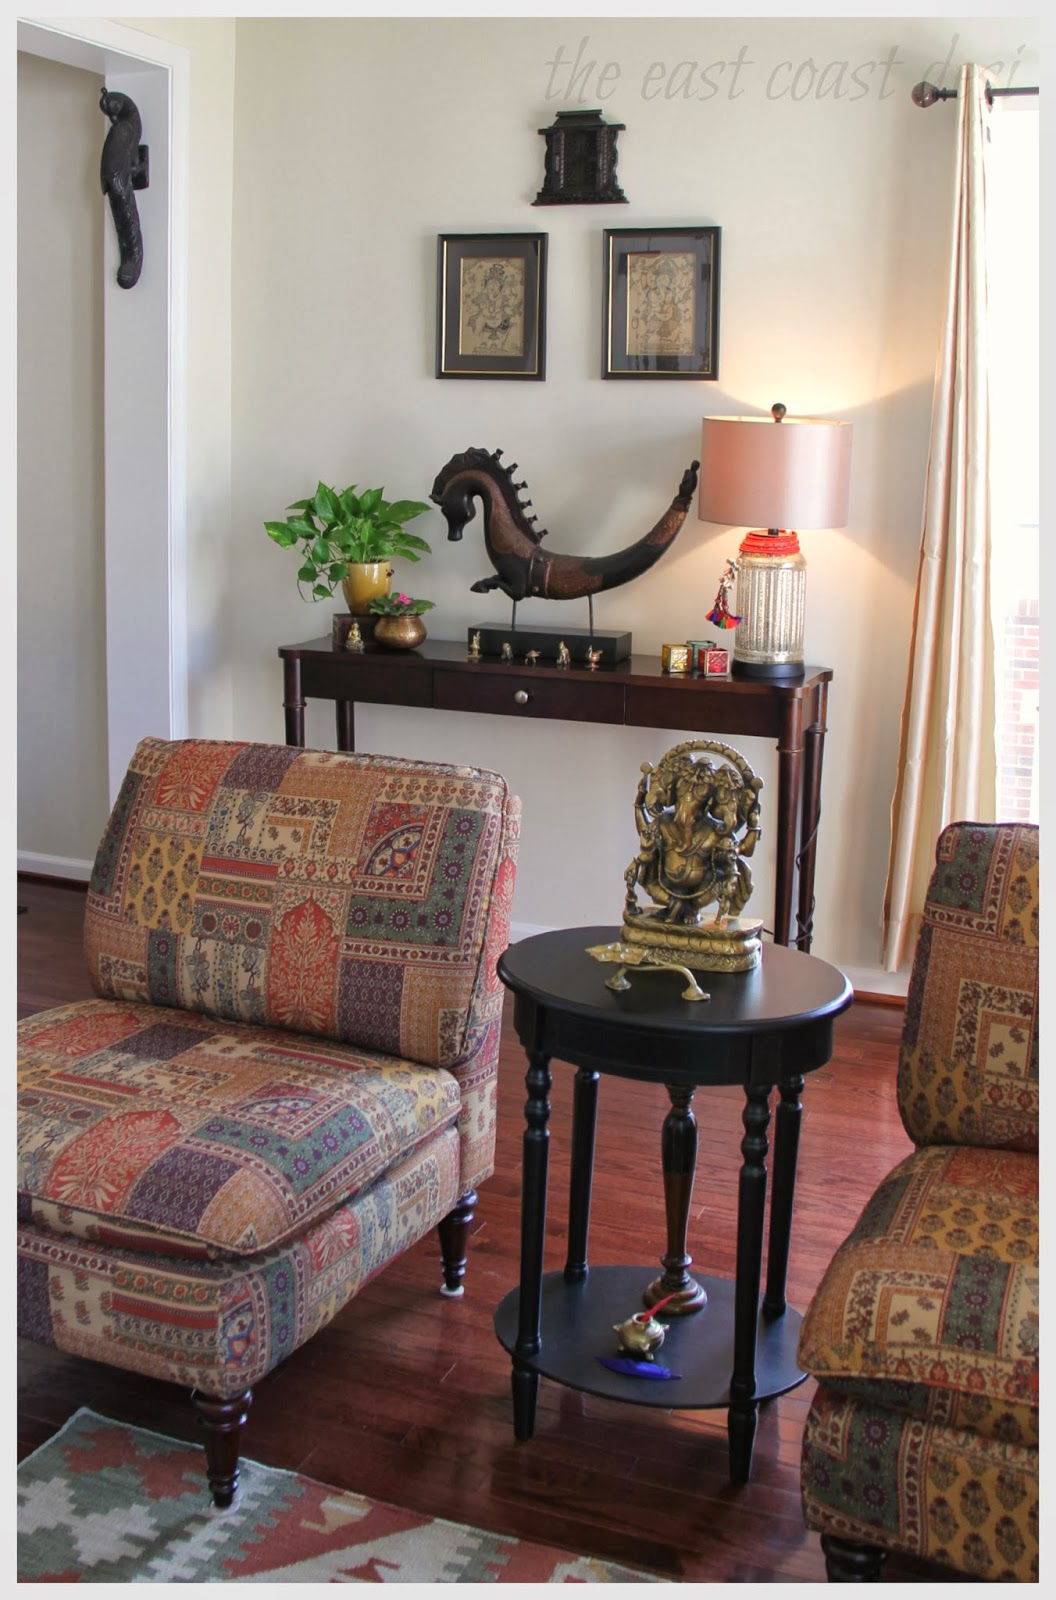 The east coast desi my living room a reflection of india Living room designs indian style